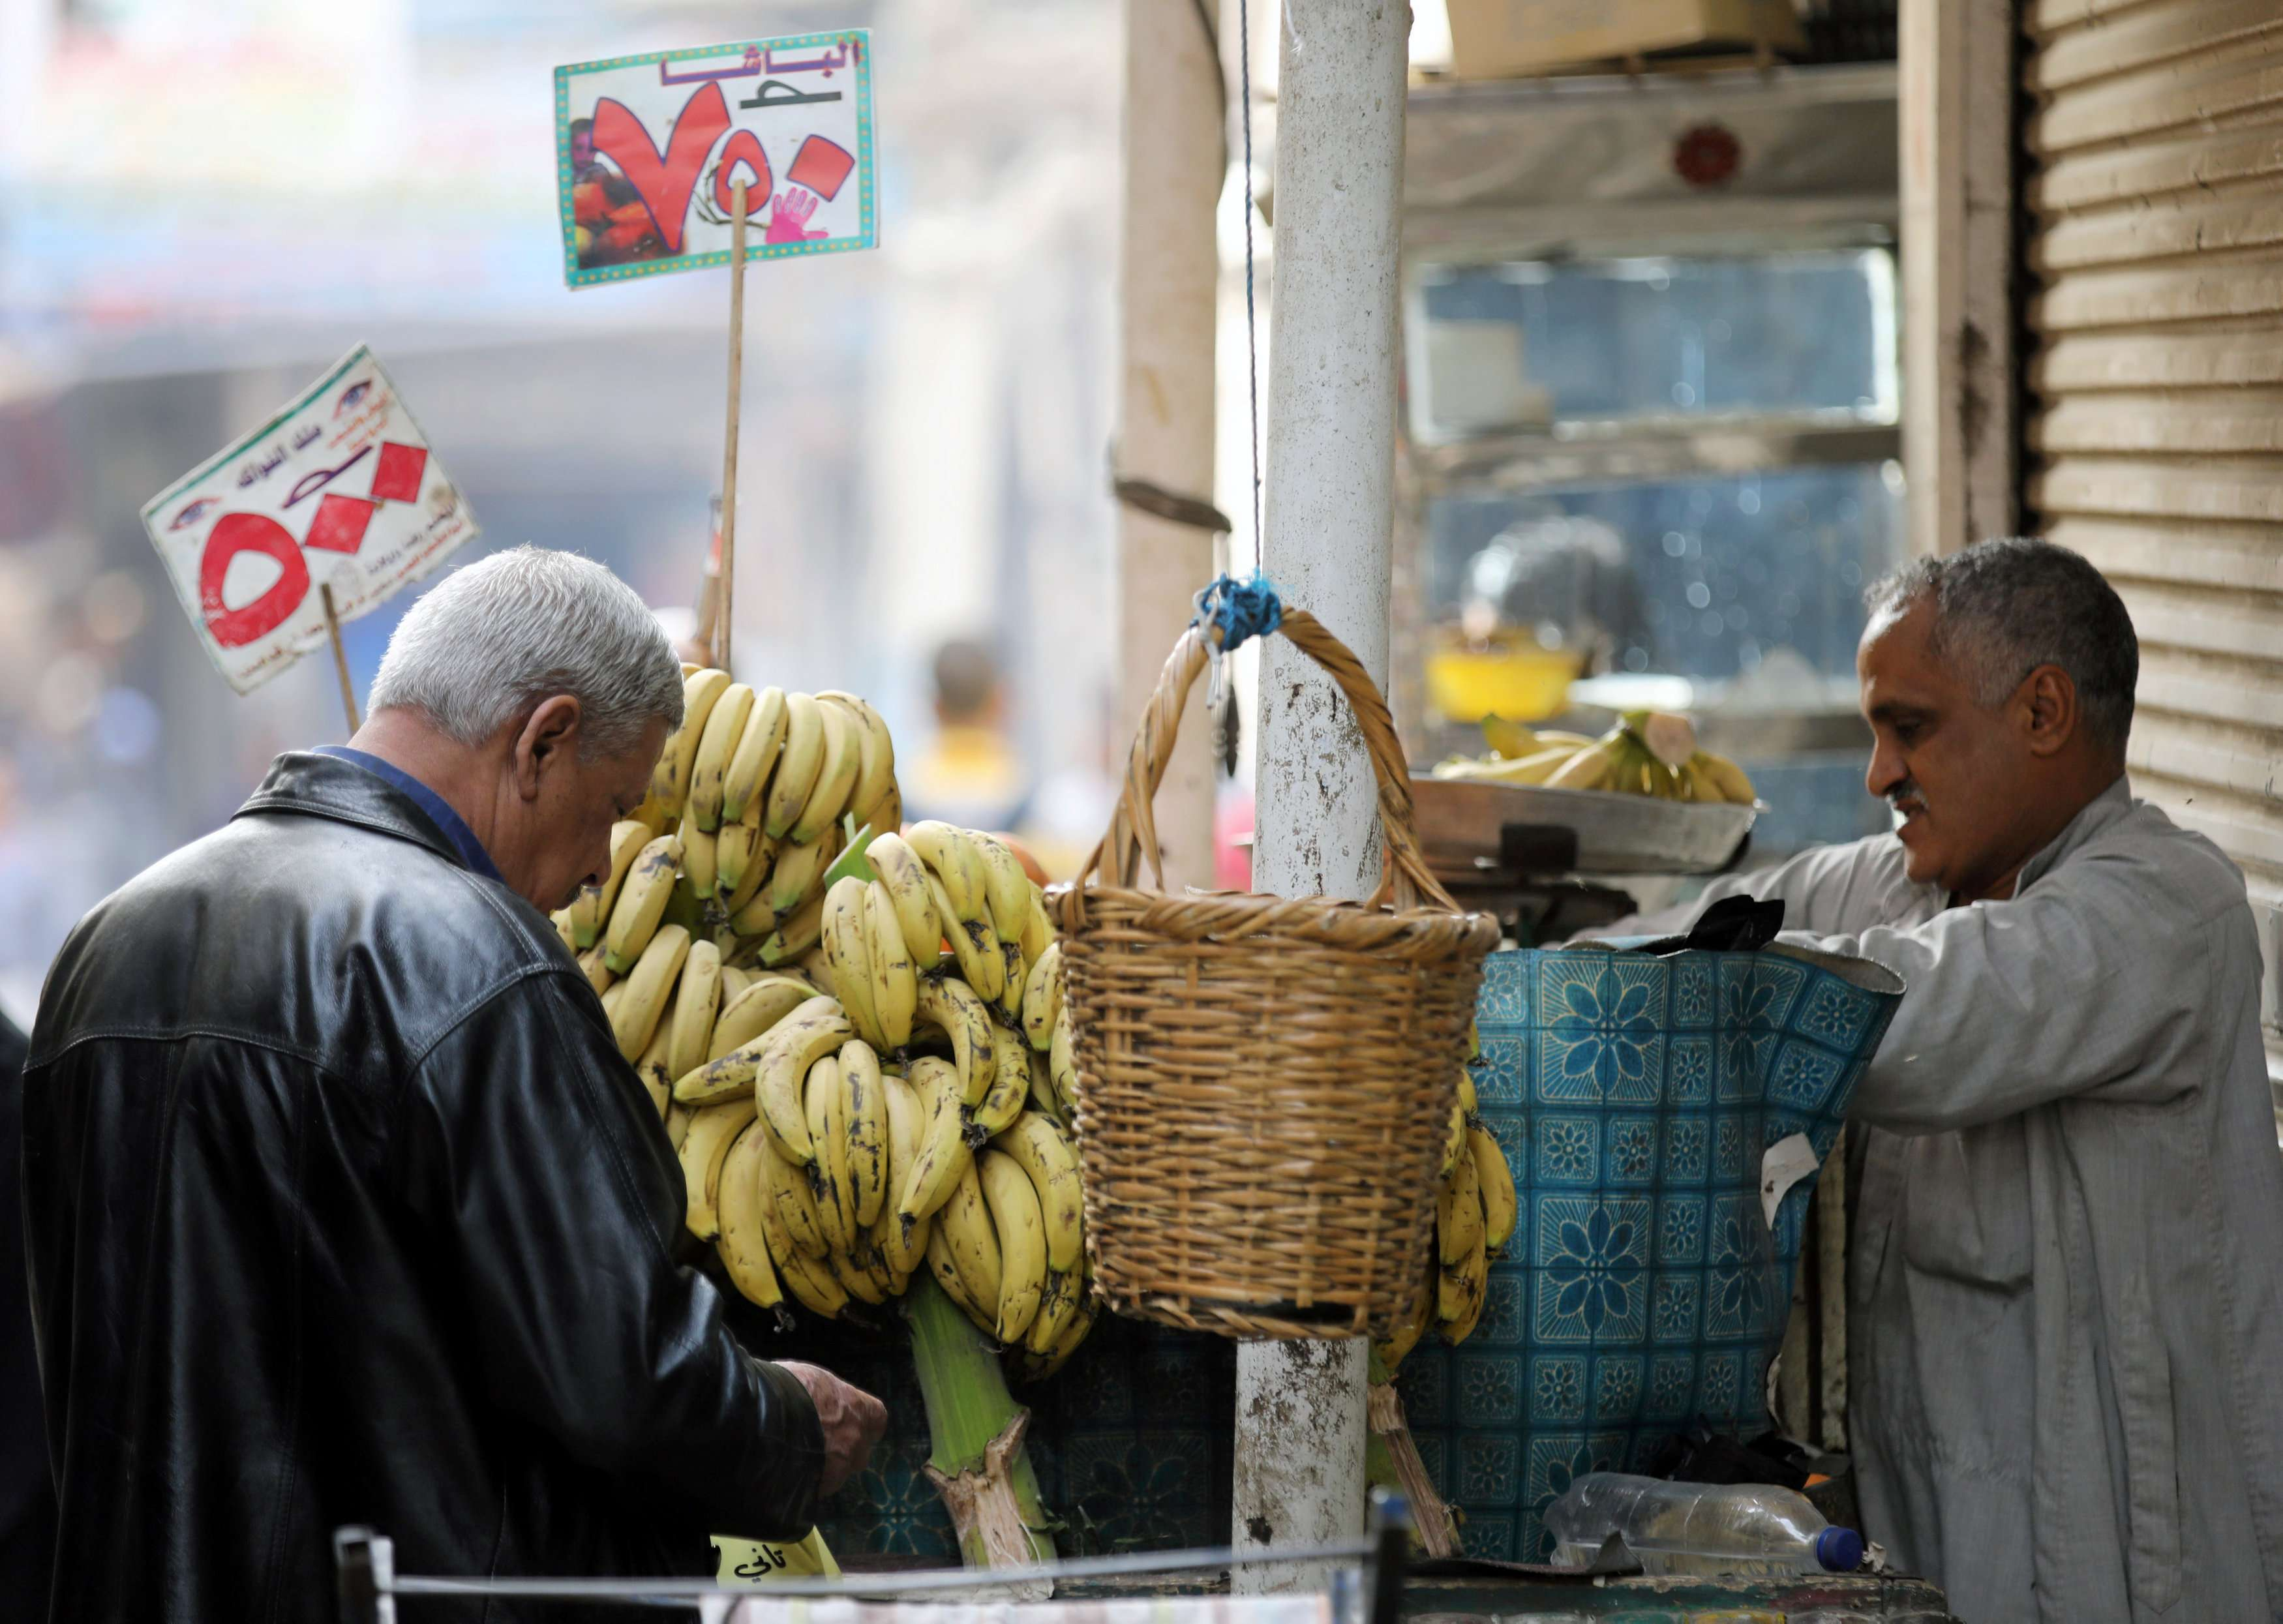 A customer counts money as he prepares to buy fruit at a market in Cairo. (Reuters)